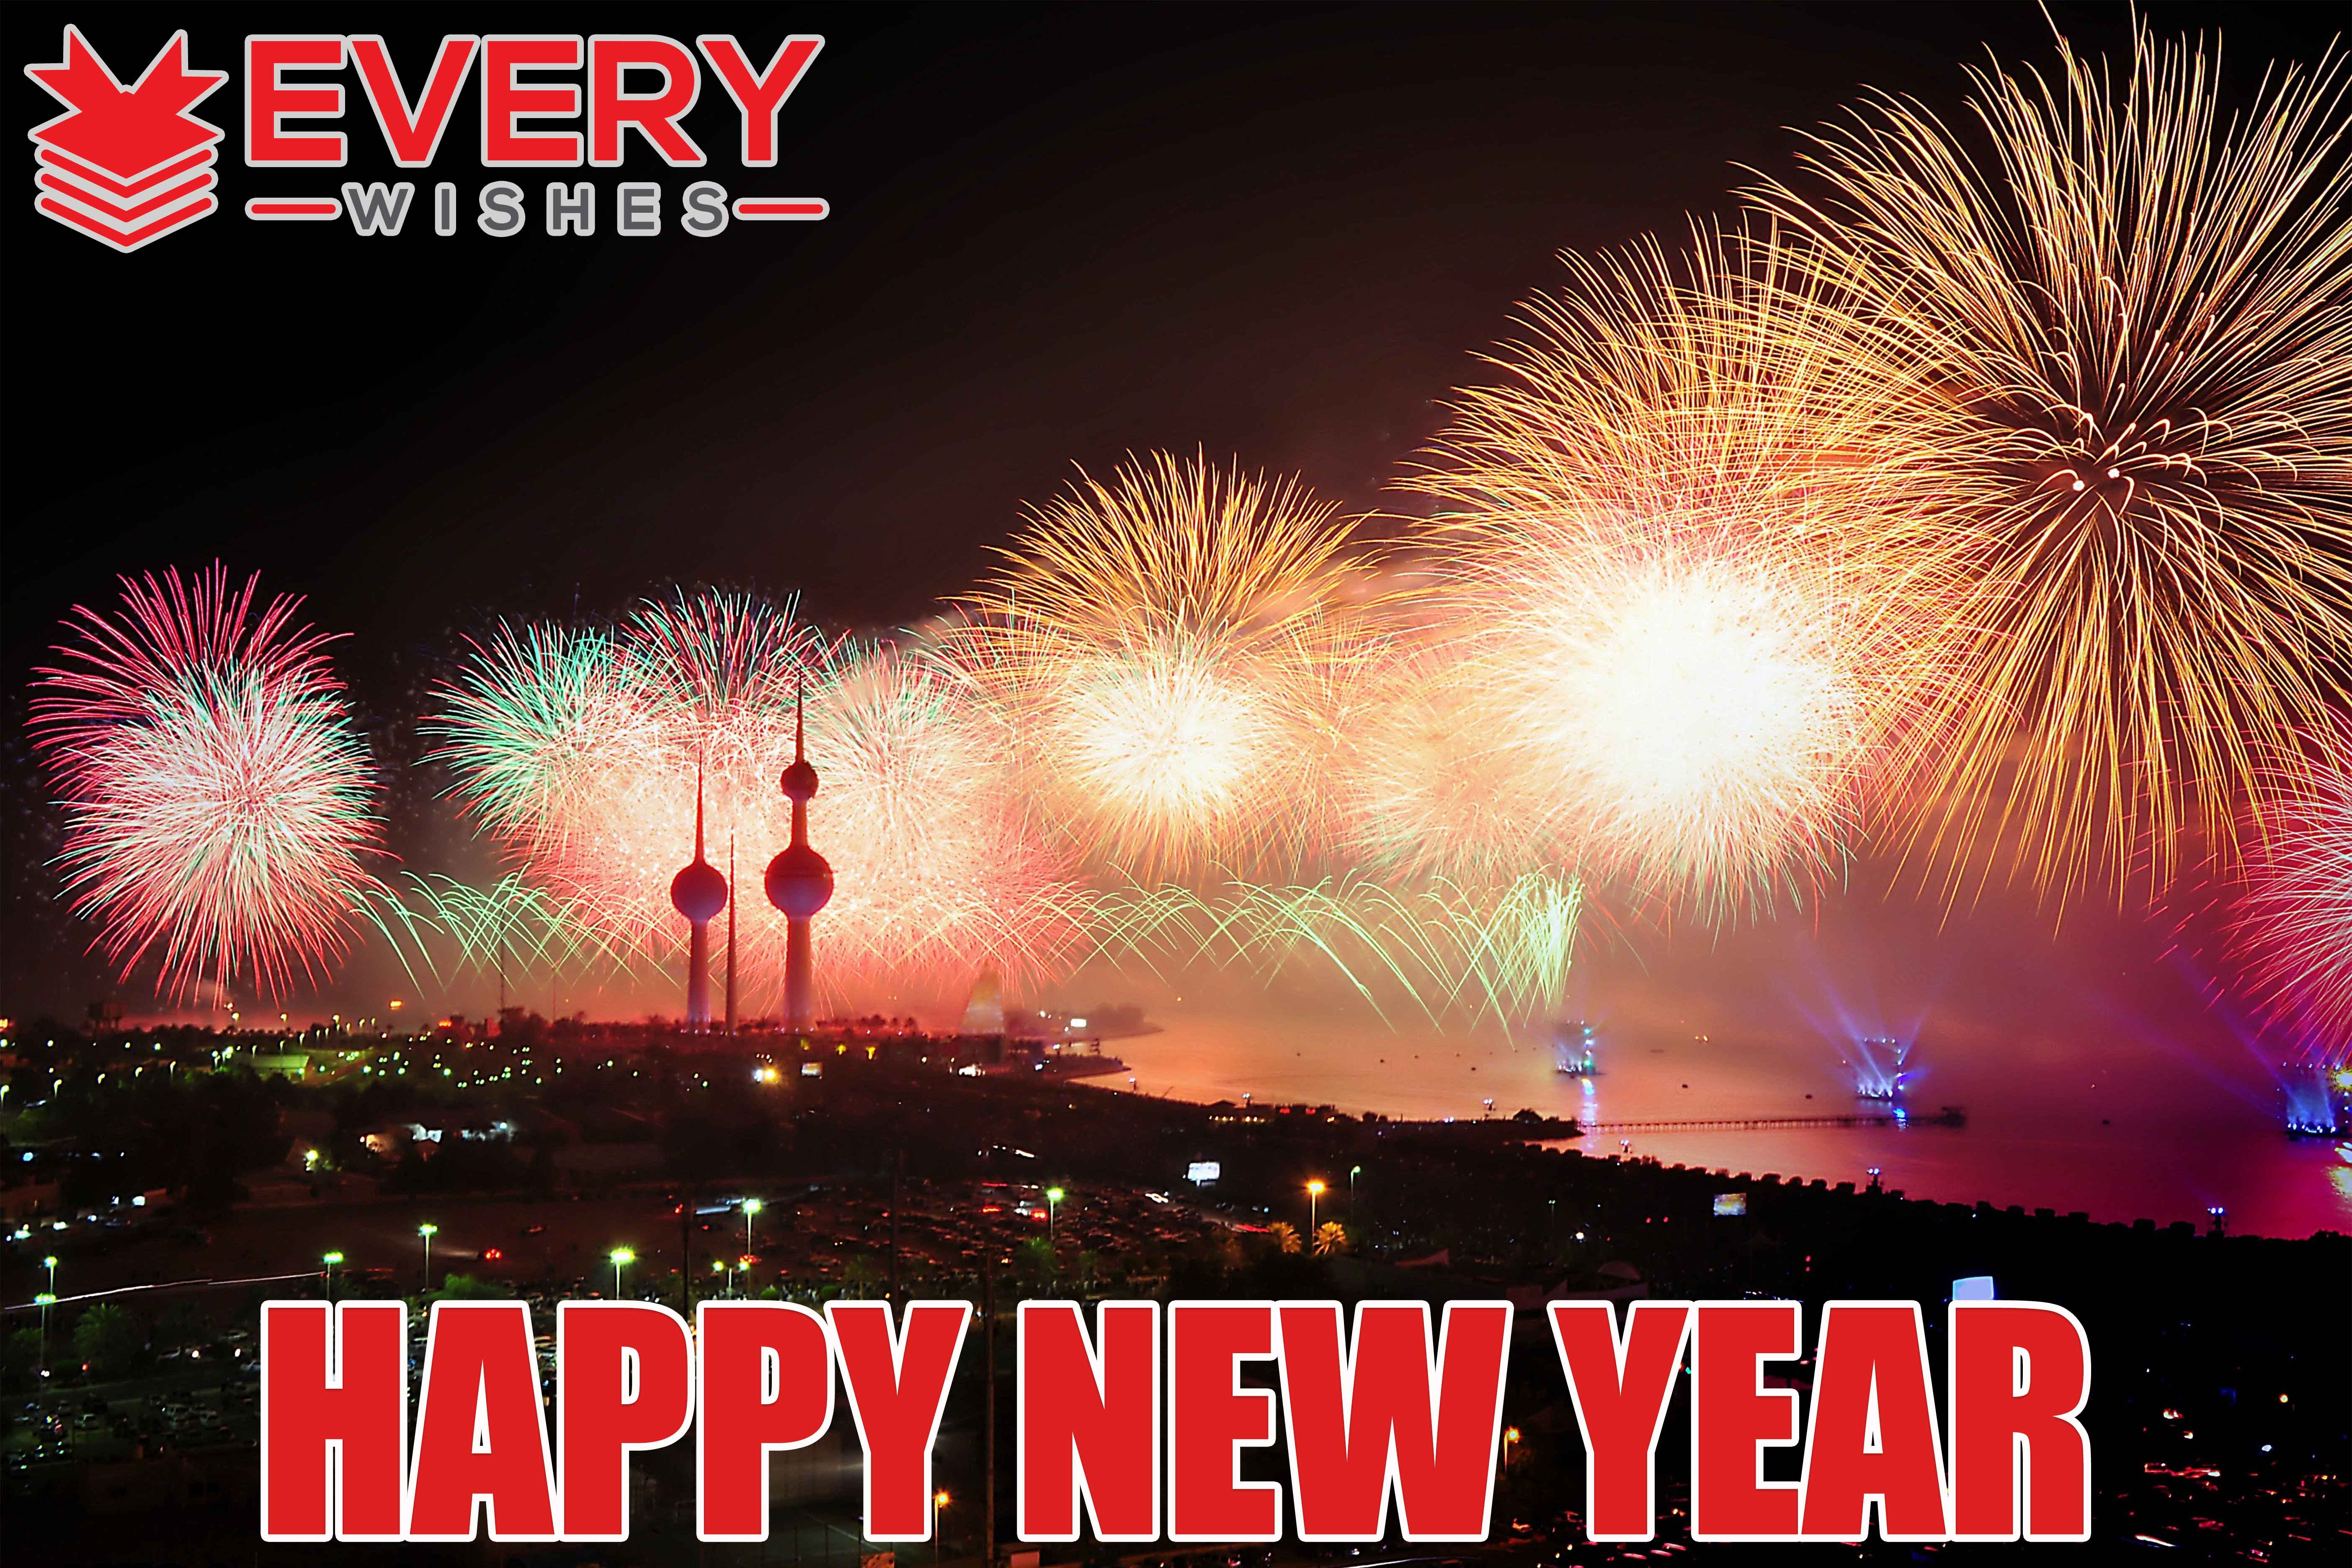 New year wishes for friends happy new year messages for friends happy new year wishes messages quotes cards images m4hsunfo